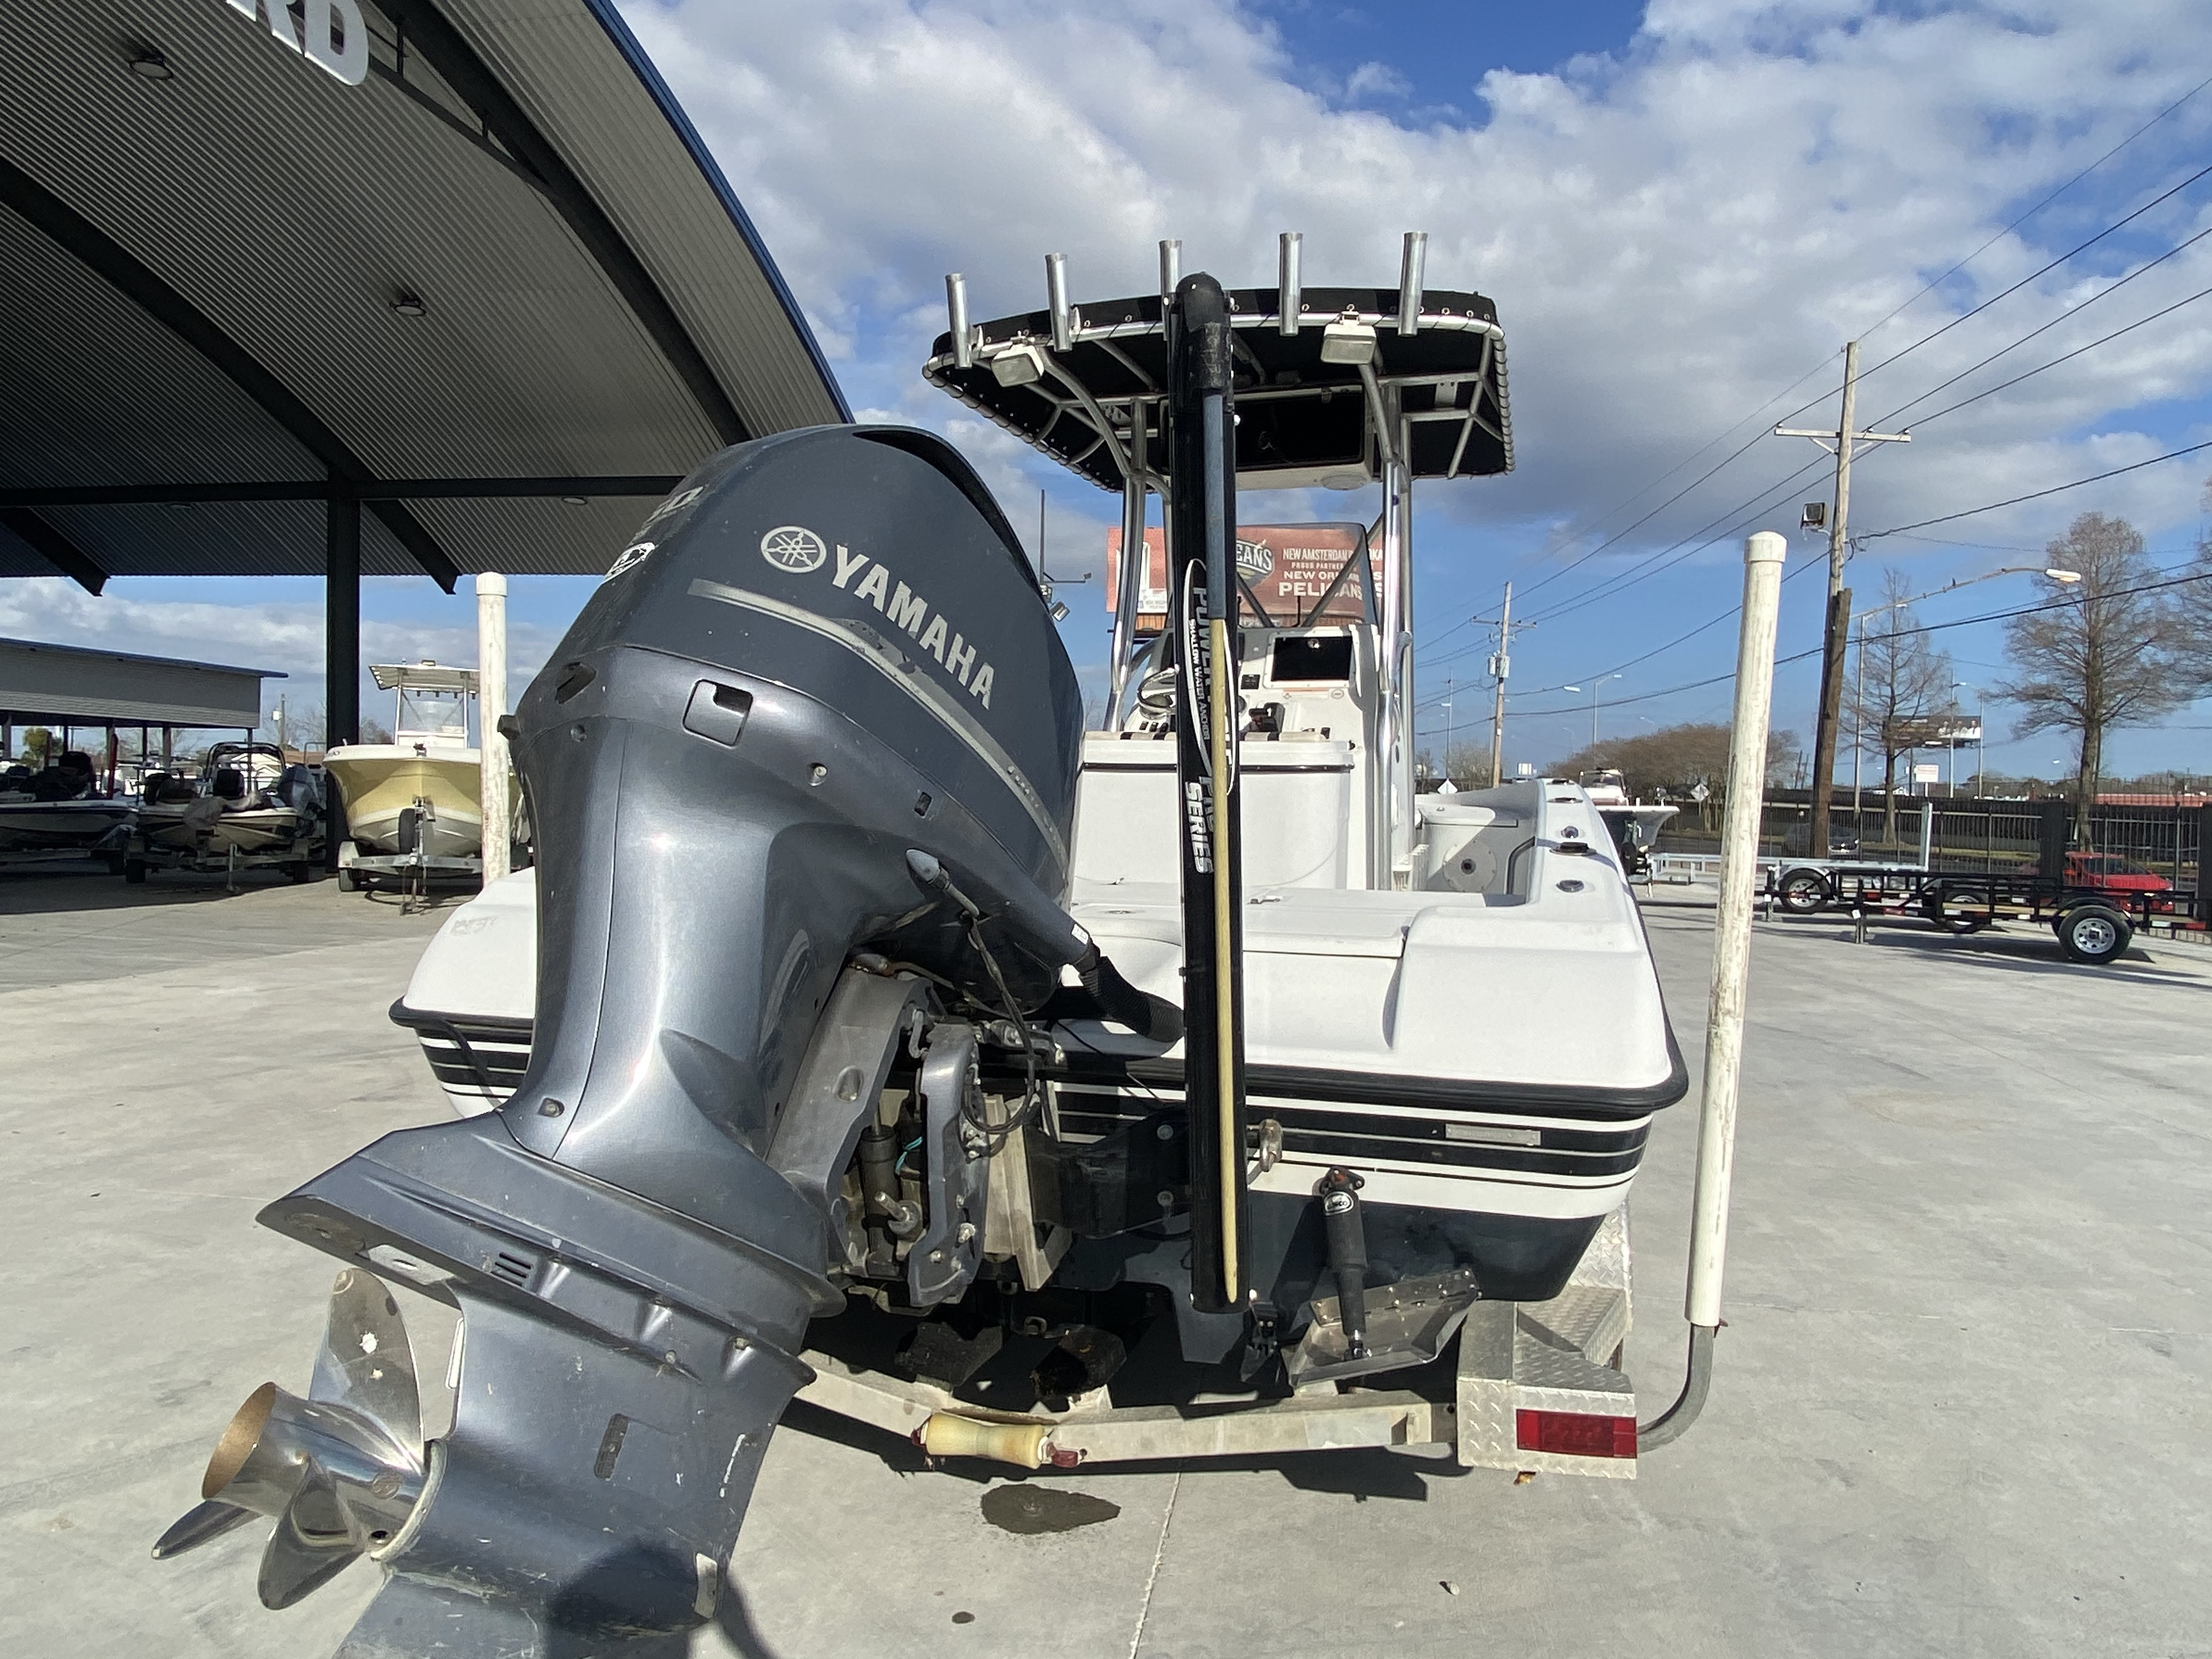 2010 Champion boat for sale, model of the boat is 25 BAY & Image # 11 of 25